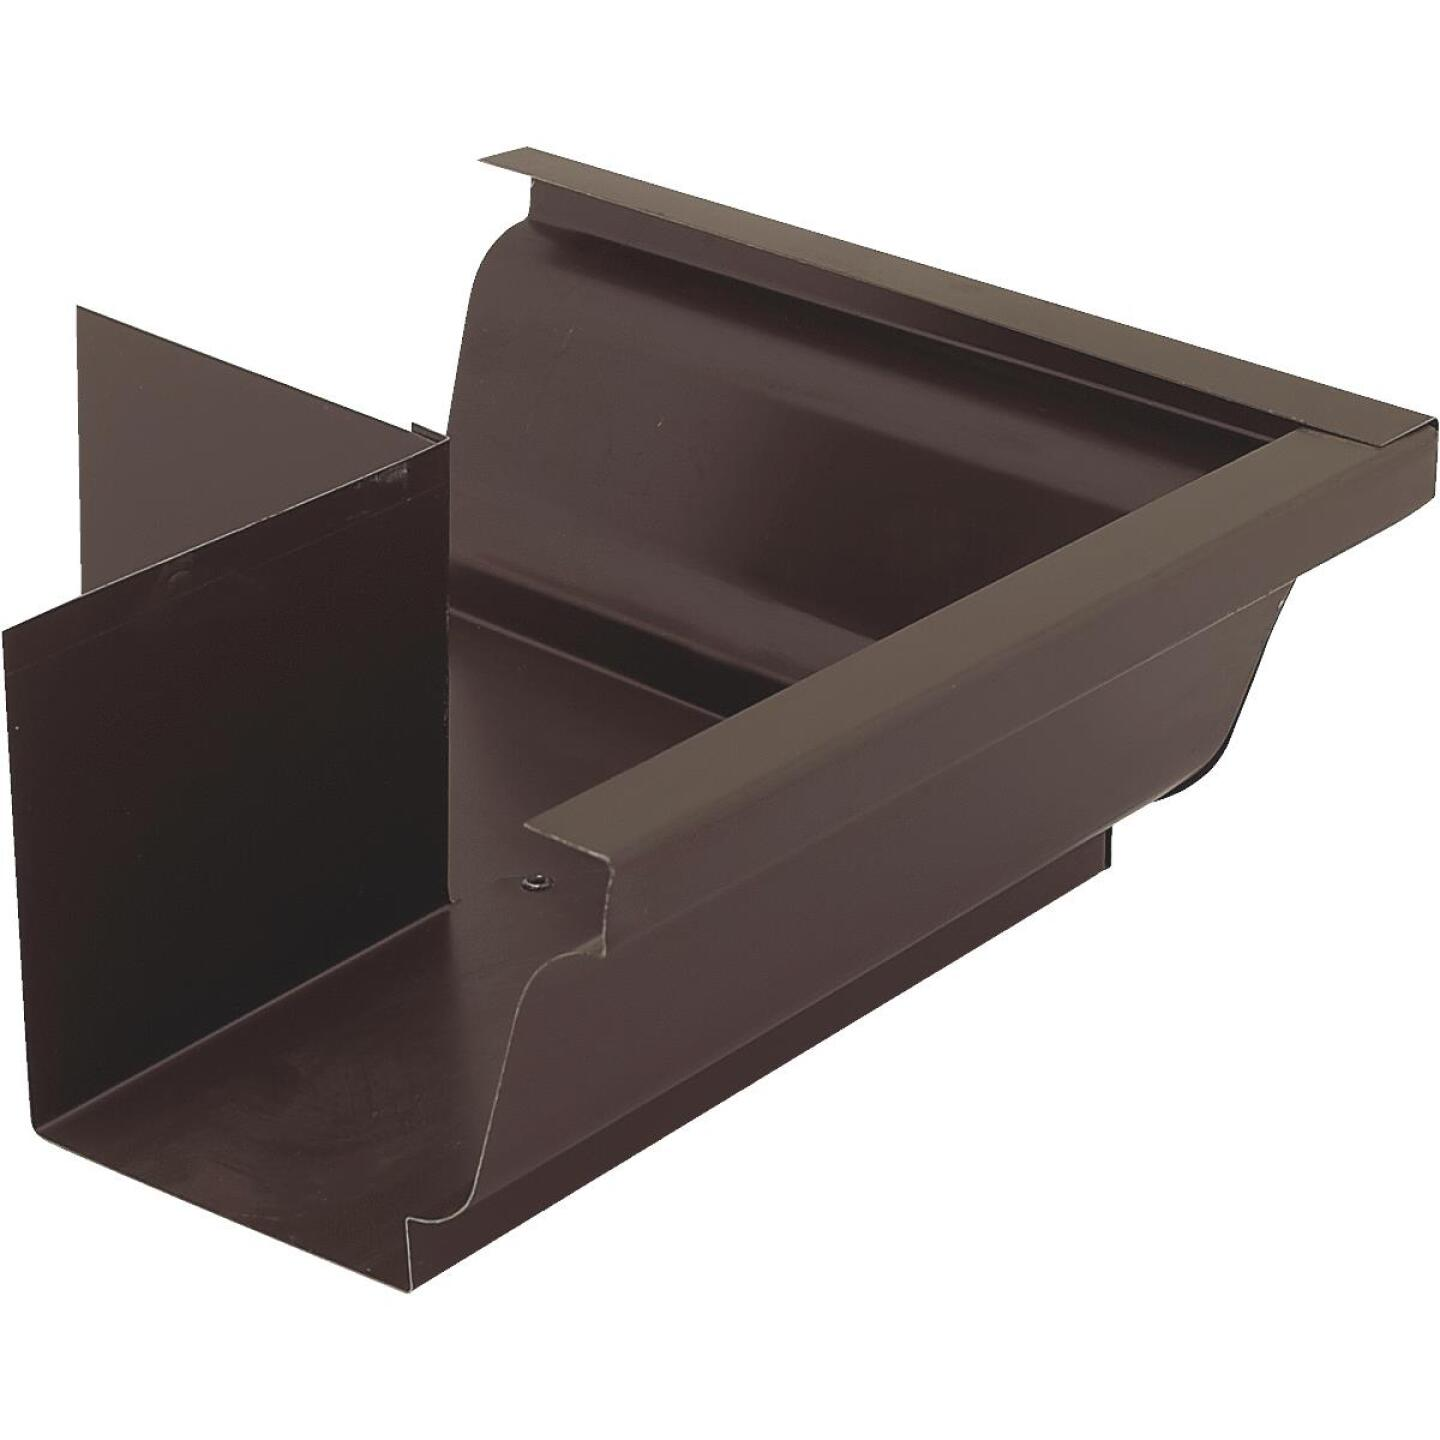 NorWesco 4 In. Galvanized Brown Gutter Outside Corner Image 1